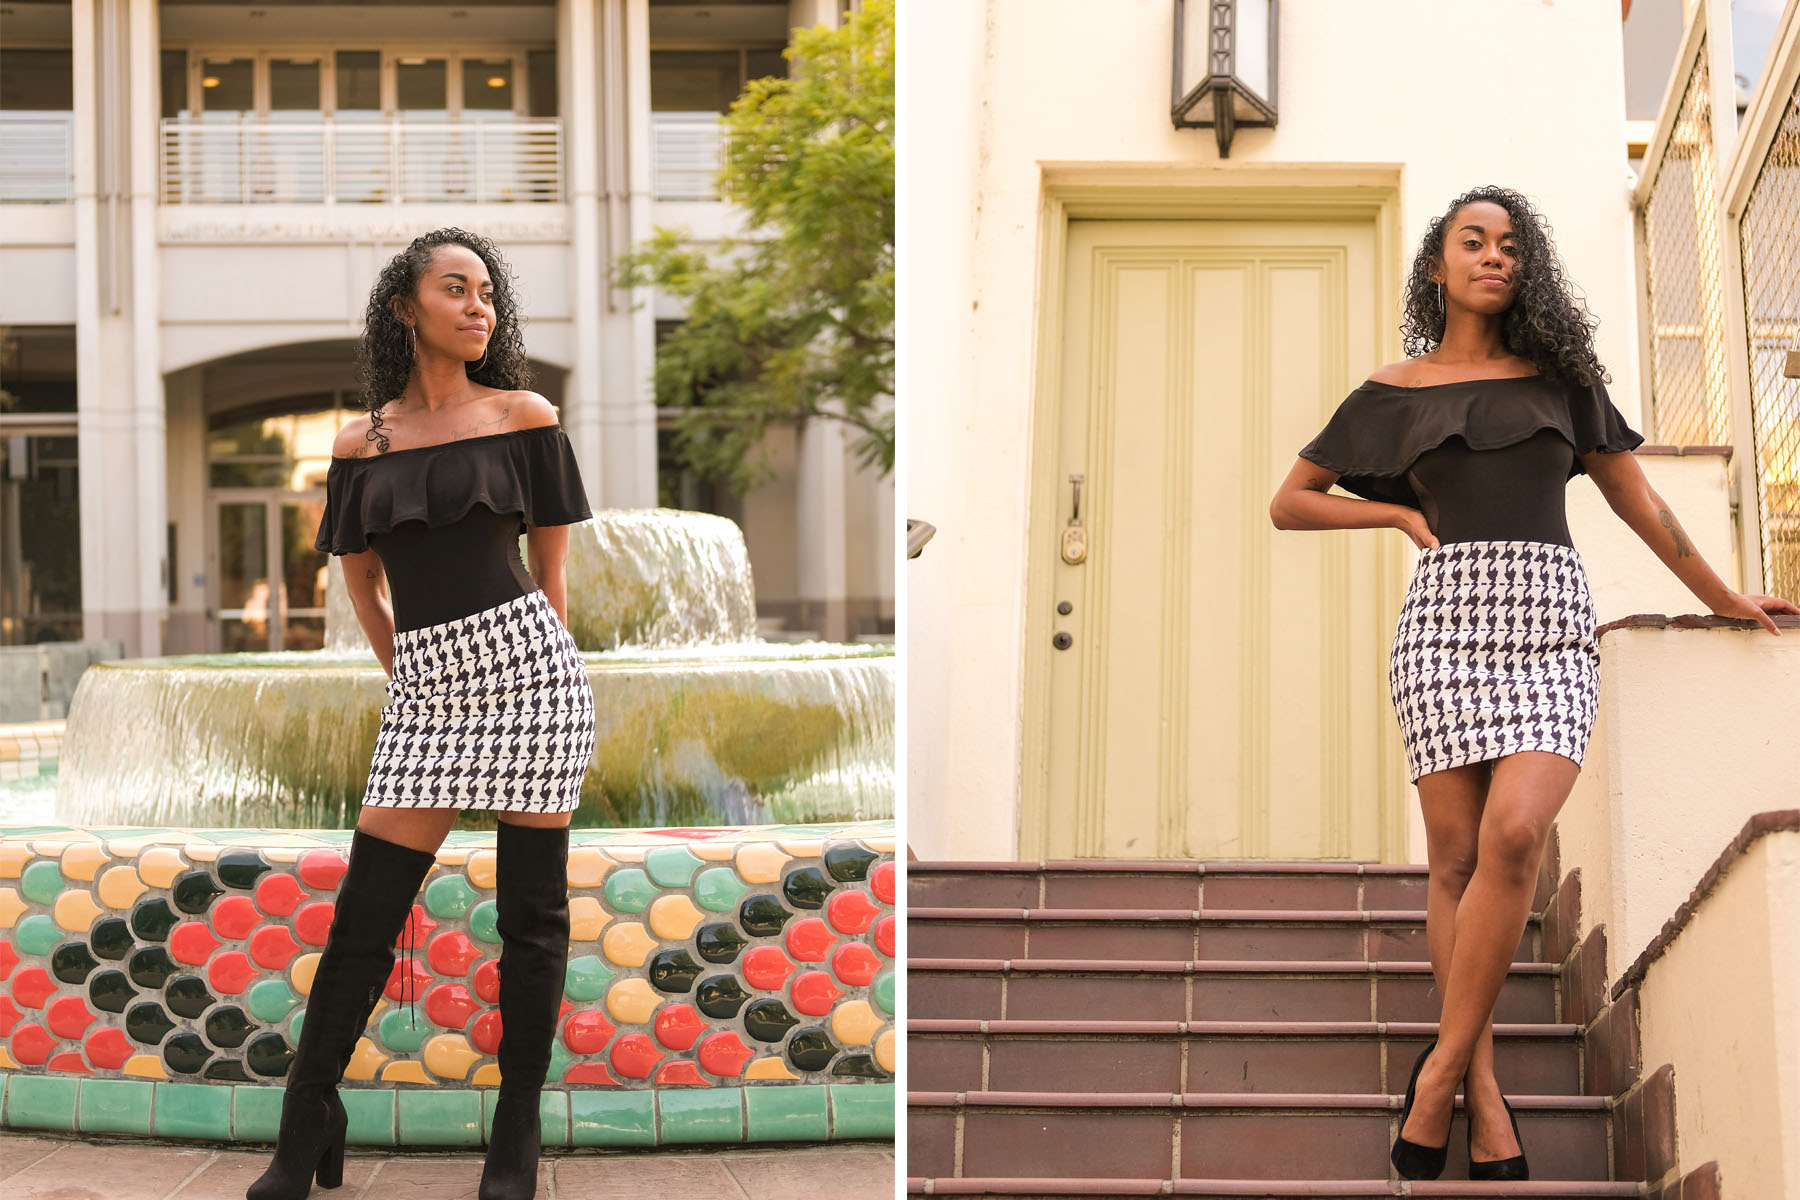 Houndstooth-Dressing-with-Styles.jpg